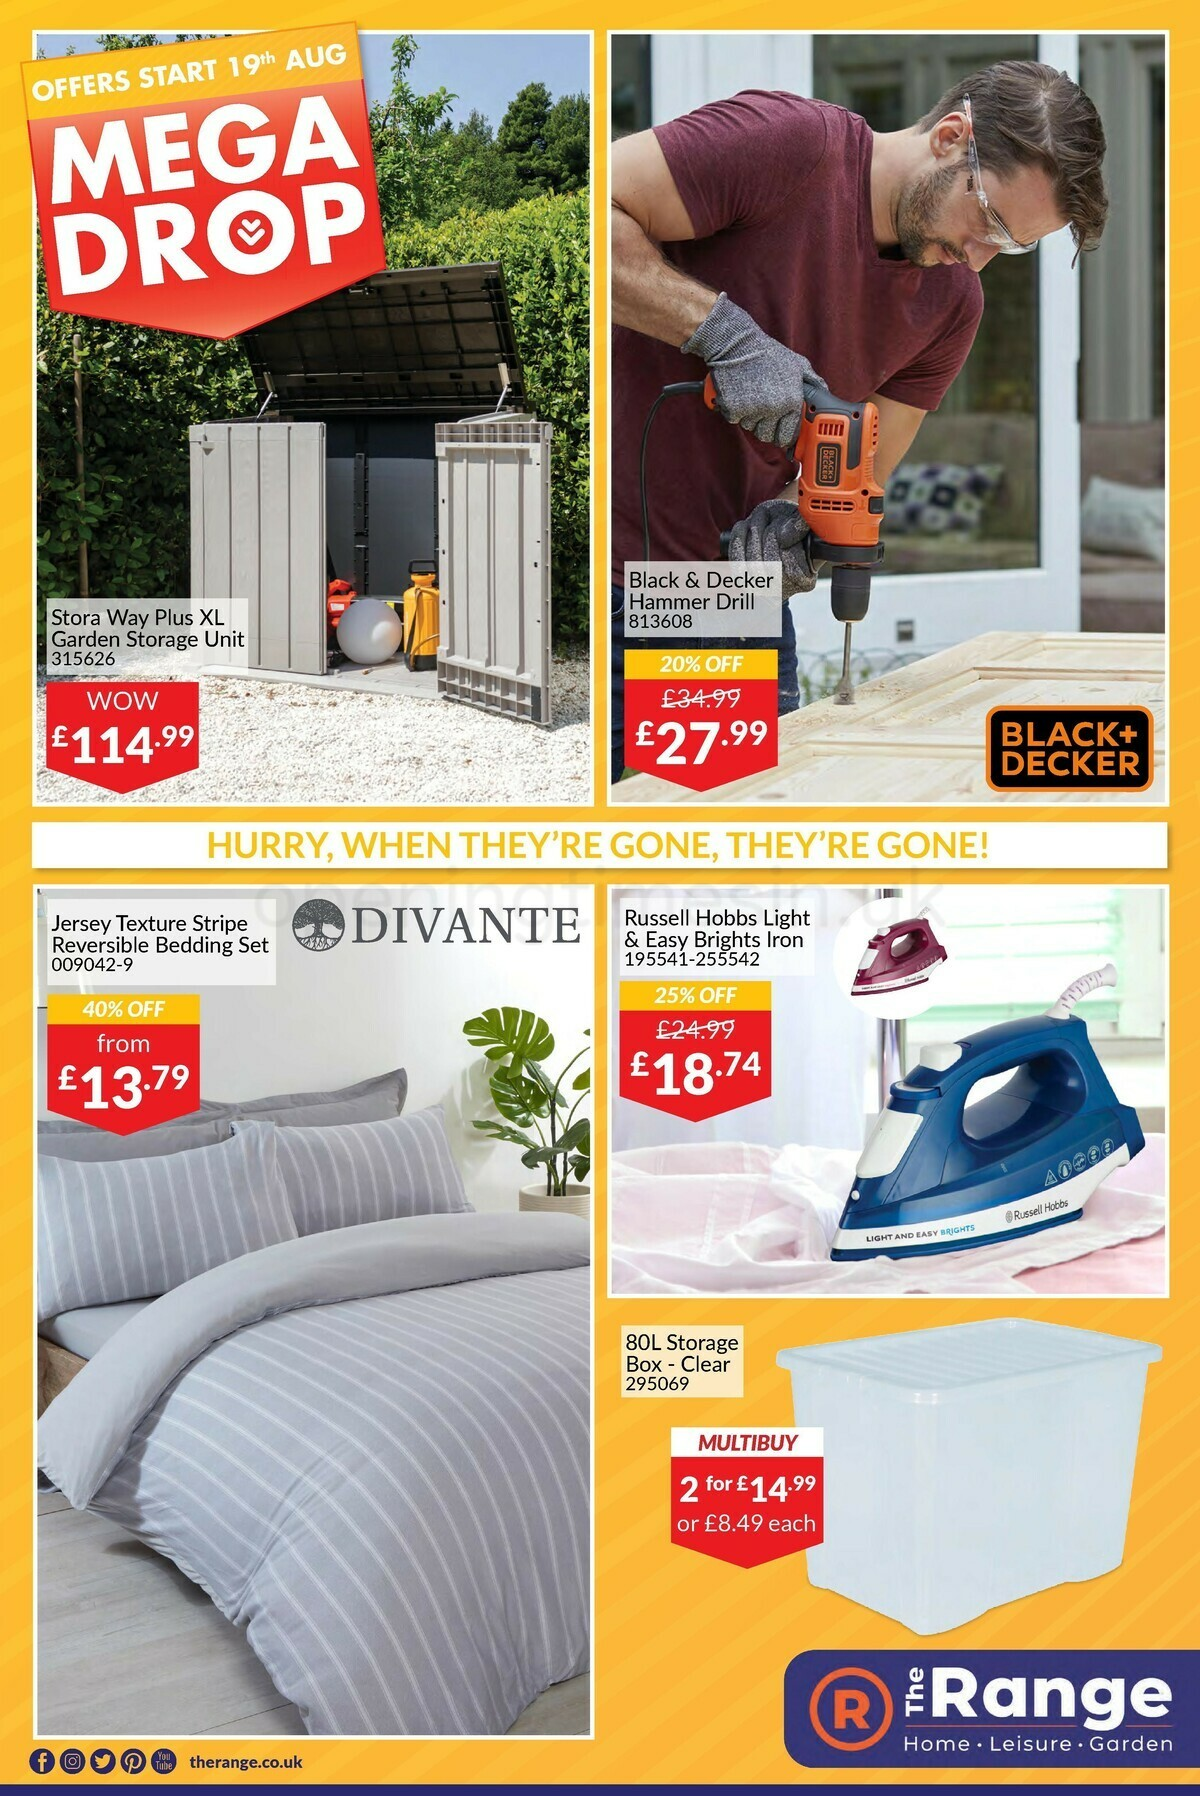 The Range Offers from August 19